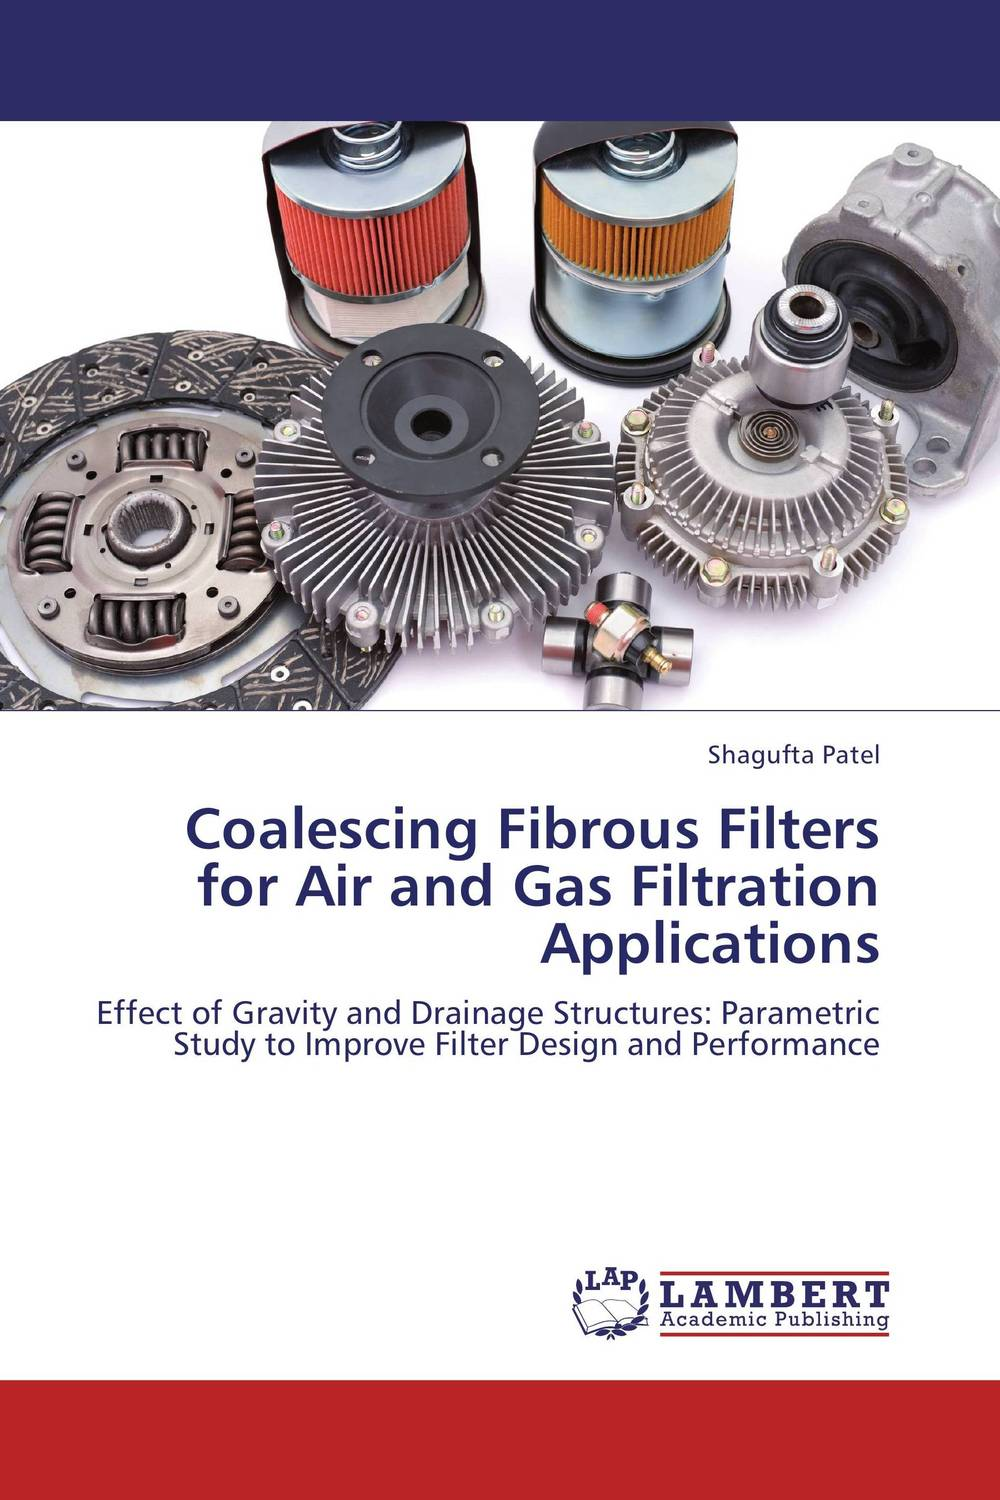 Coalescing Fibrous Filters for Air and Gas Filtration Applications economizer forces heat transmission from liquid to vapour effectively and keep pressure drop down to a reasonable level